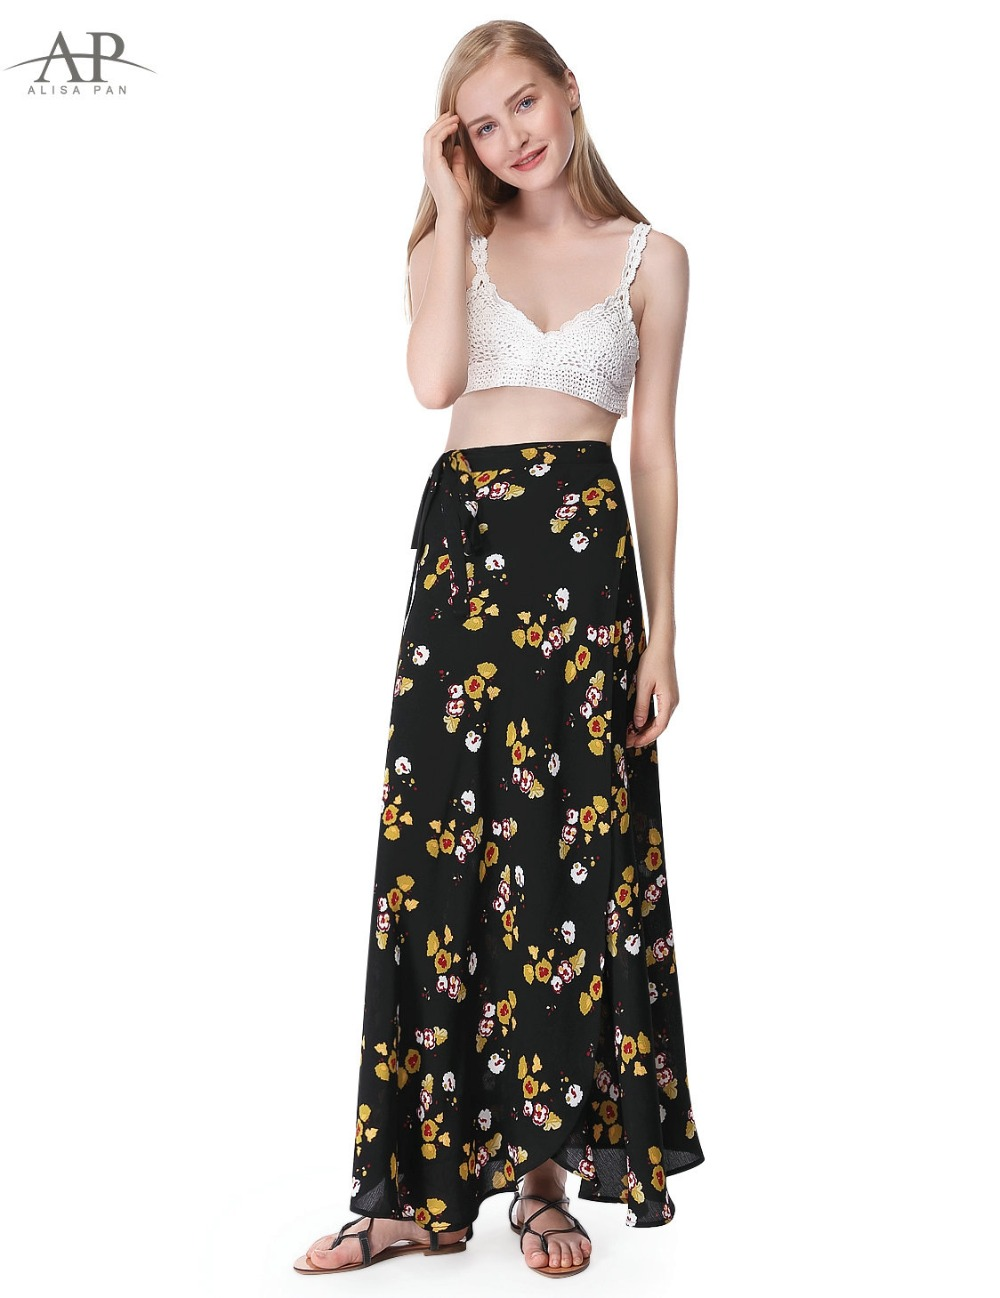 2017 Women Summer Boho New Floral Printed Skirts Alisa Pan High Waist Pleated Ankle Length Skirt Casual Holiday Skirt AS01041BK